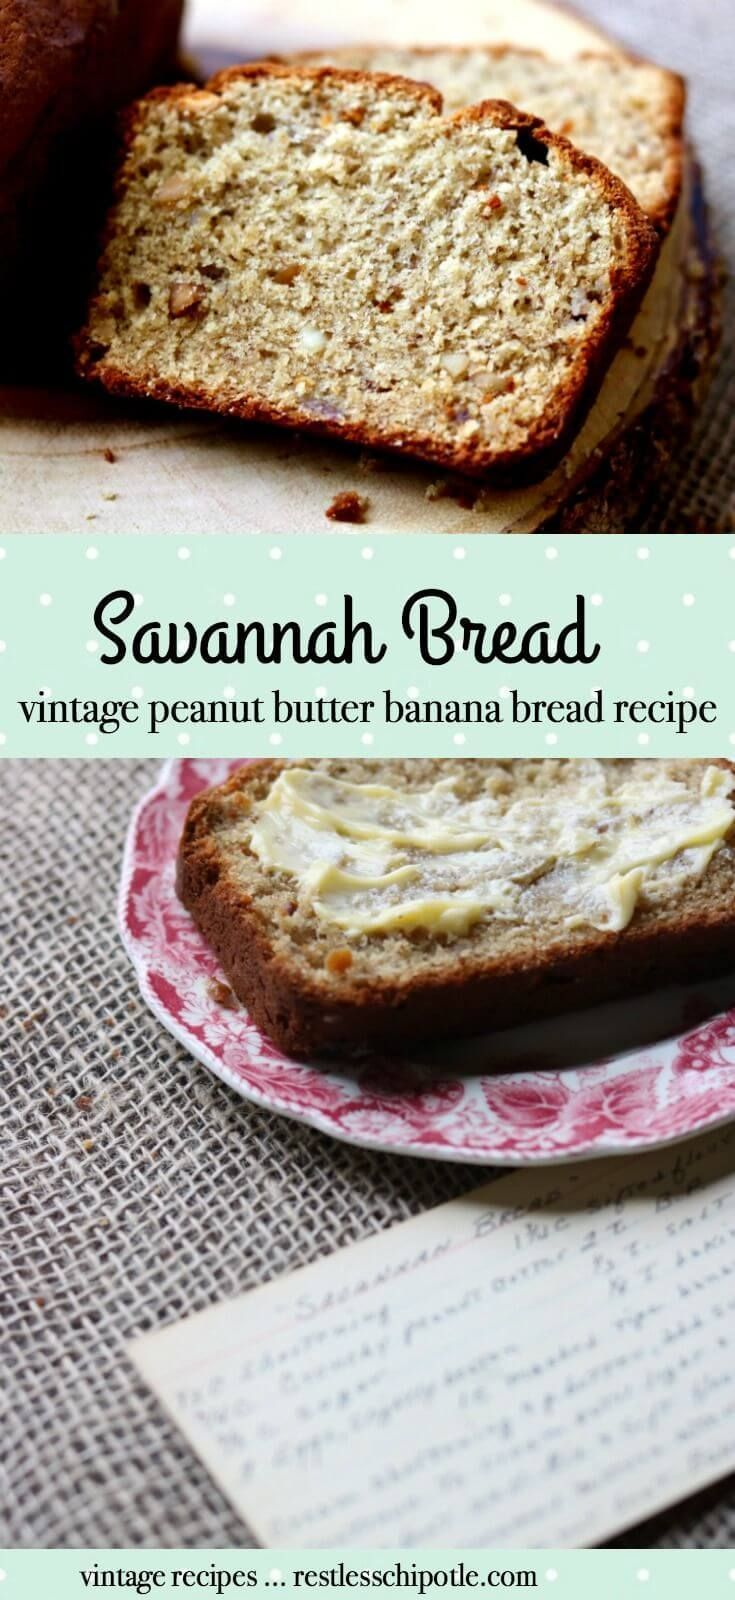 Vintage recipe for peanut butter banana bread is so good. It was called Savannah Bread at my house and this recipe is from the 1940s. RestlessChipotle.com via @Marye at Restless Chipotle